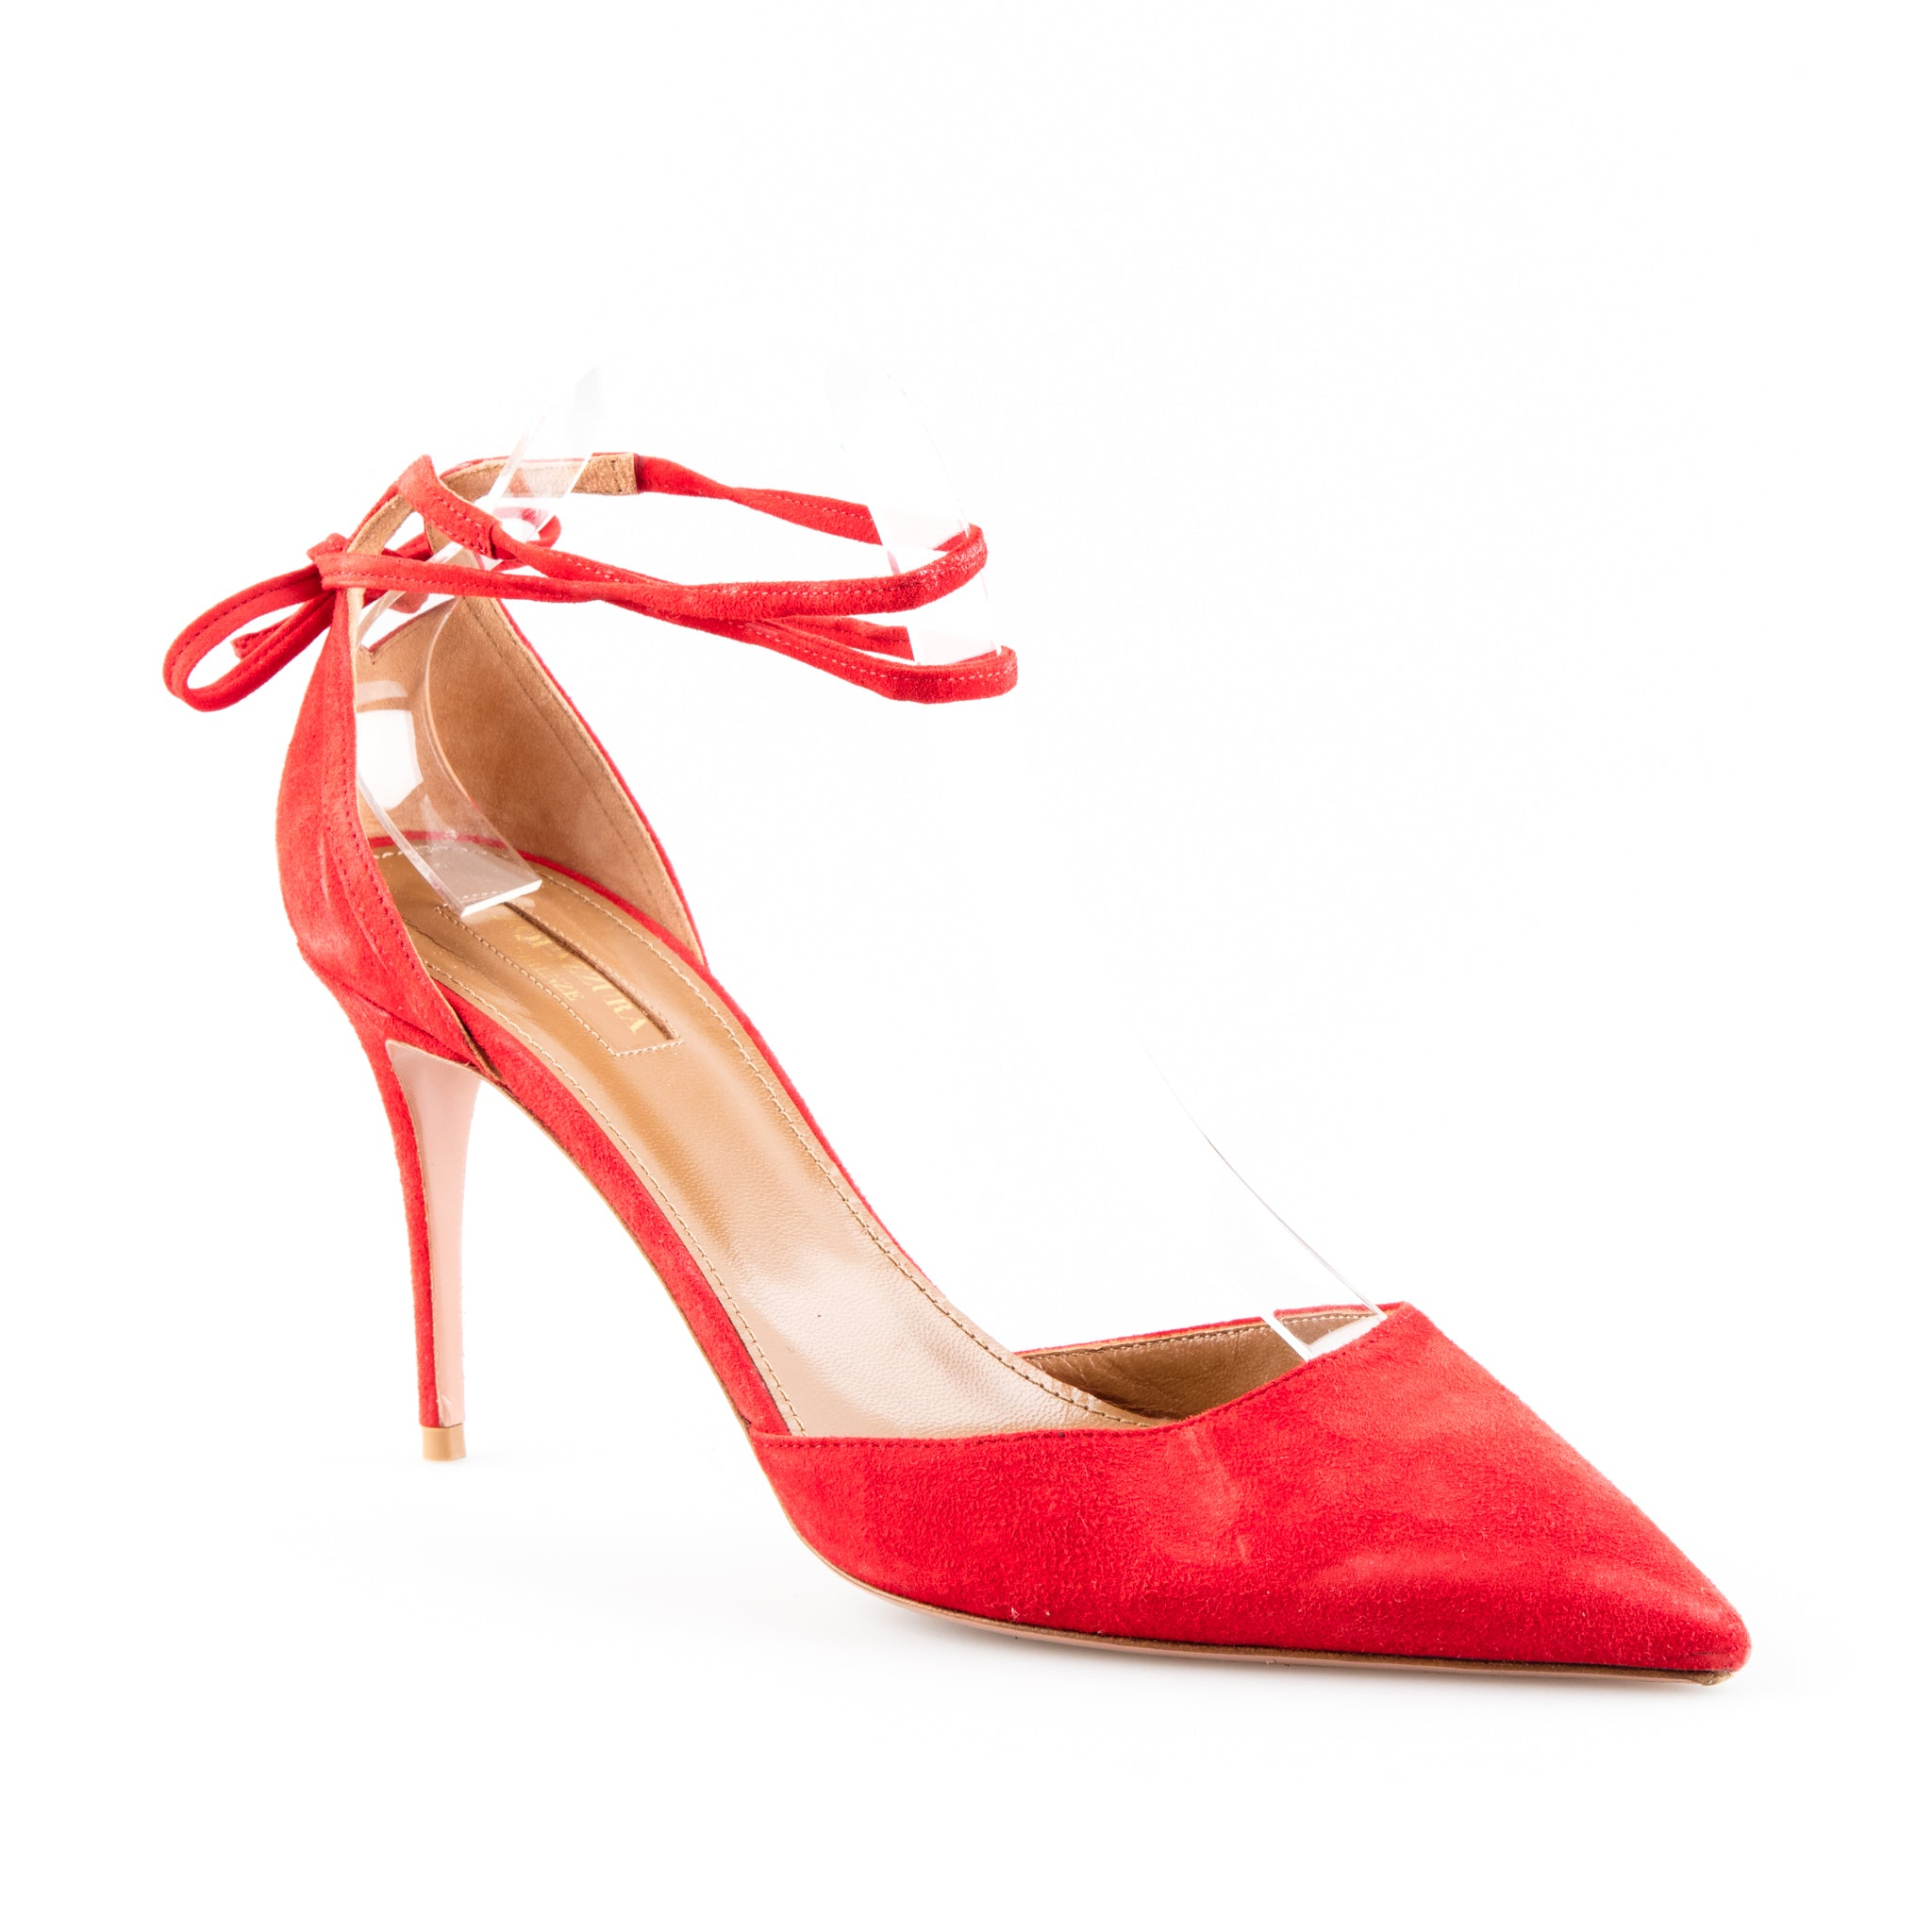 b387066d4a Aquazzura Suede 'Heart Breaker' Pointed Toe Pumps with Tie Up Ankle ...